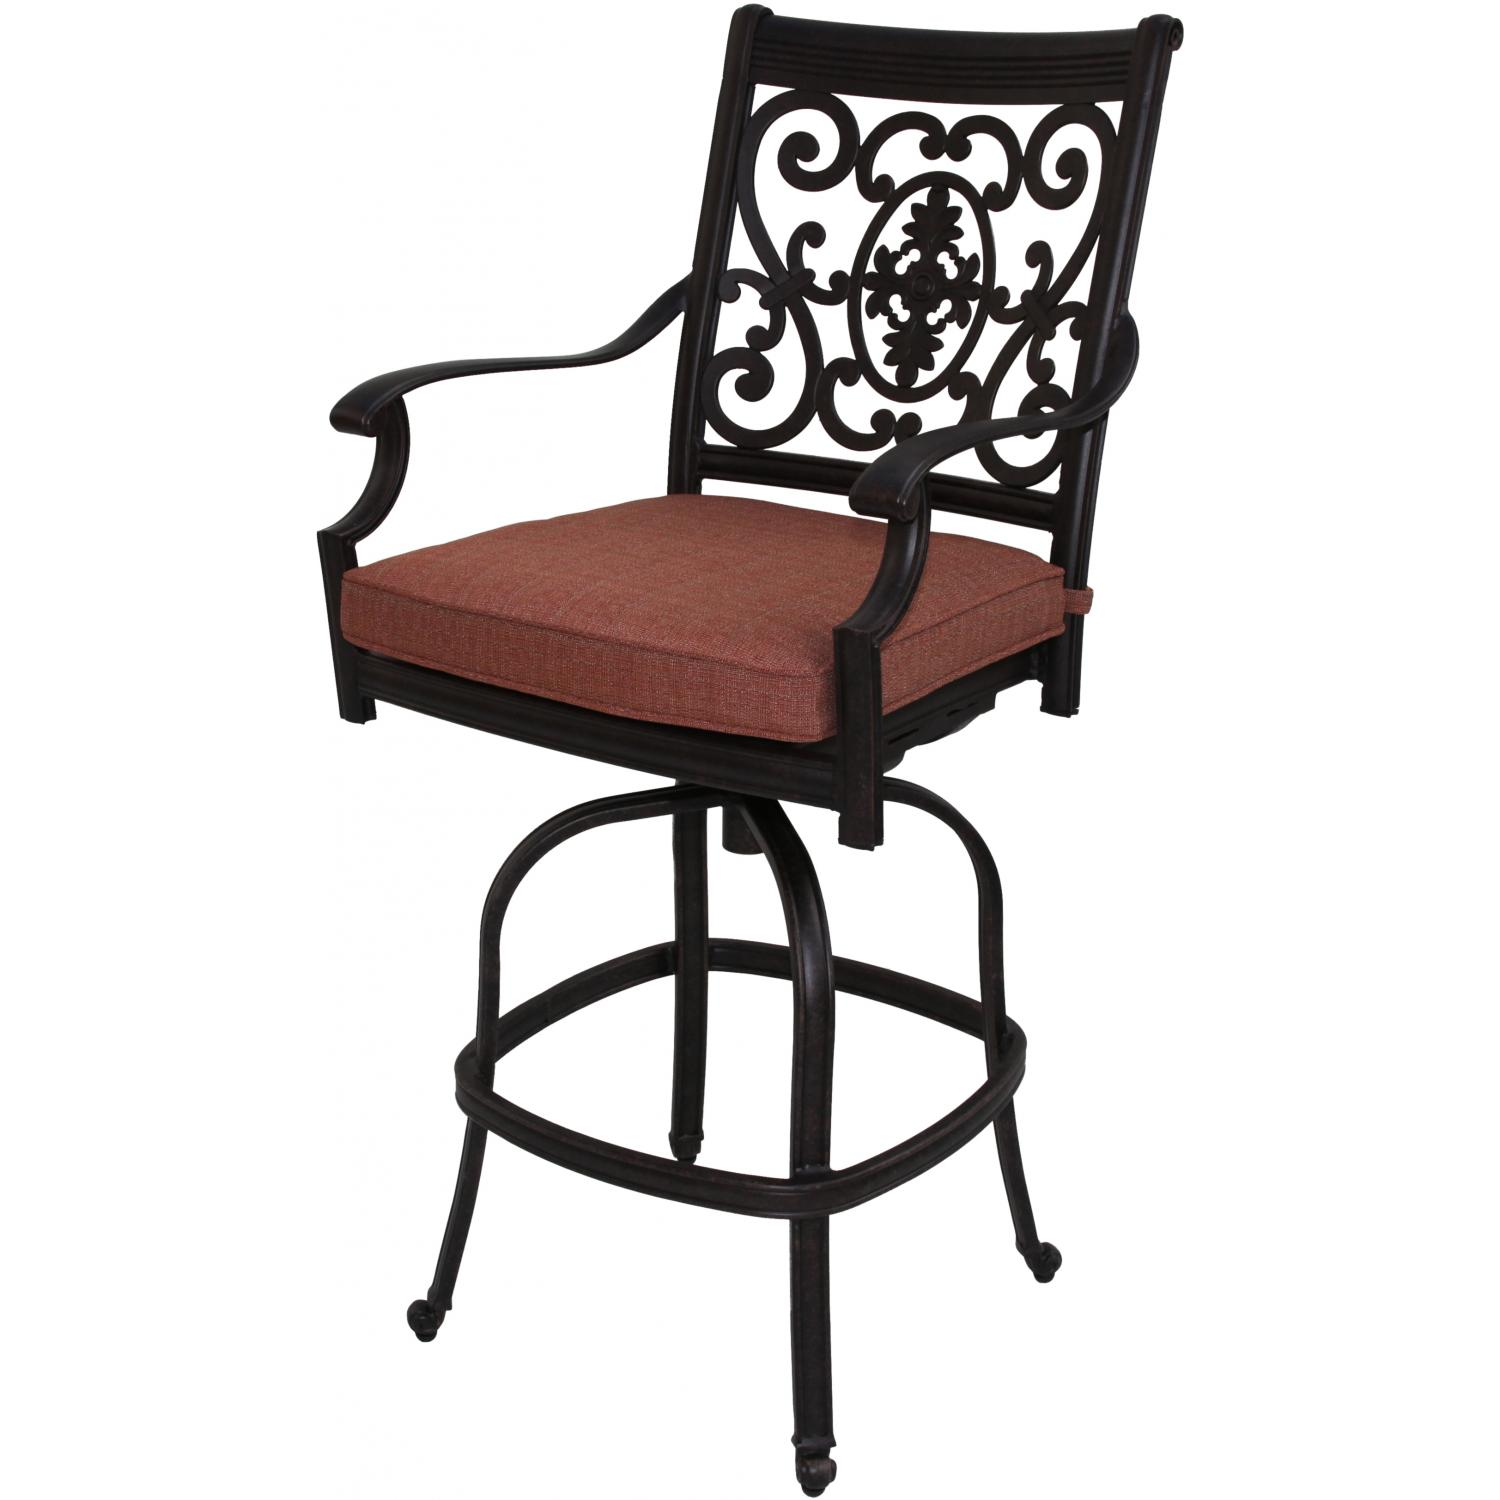 Bar Height Patio Chairs Raiders Football Helmet Chair Hd Wallpaper And Desktop Background